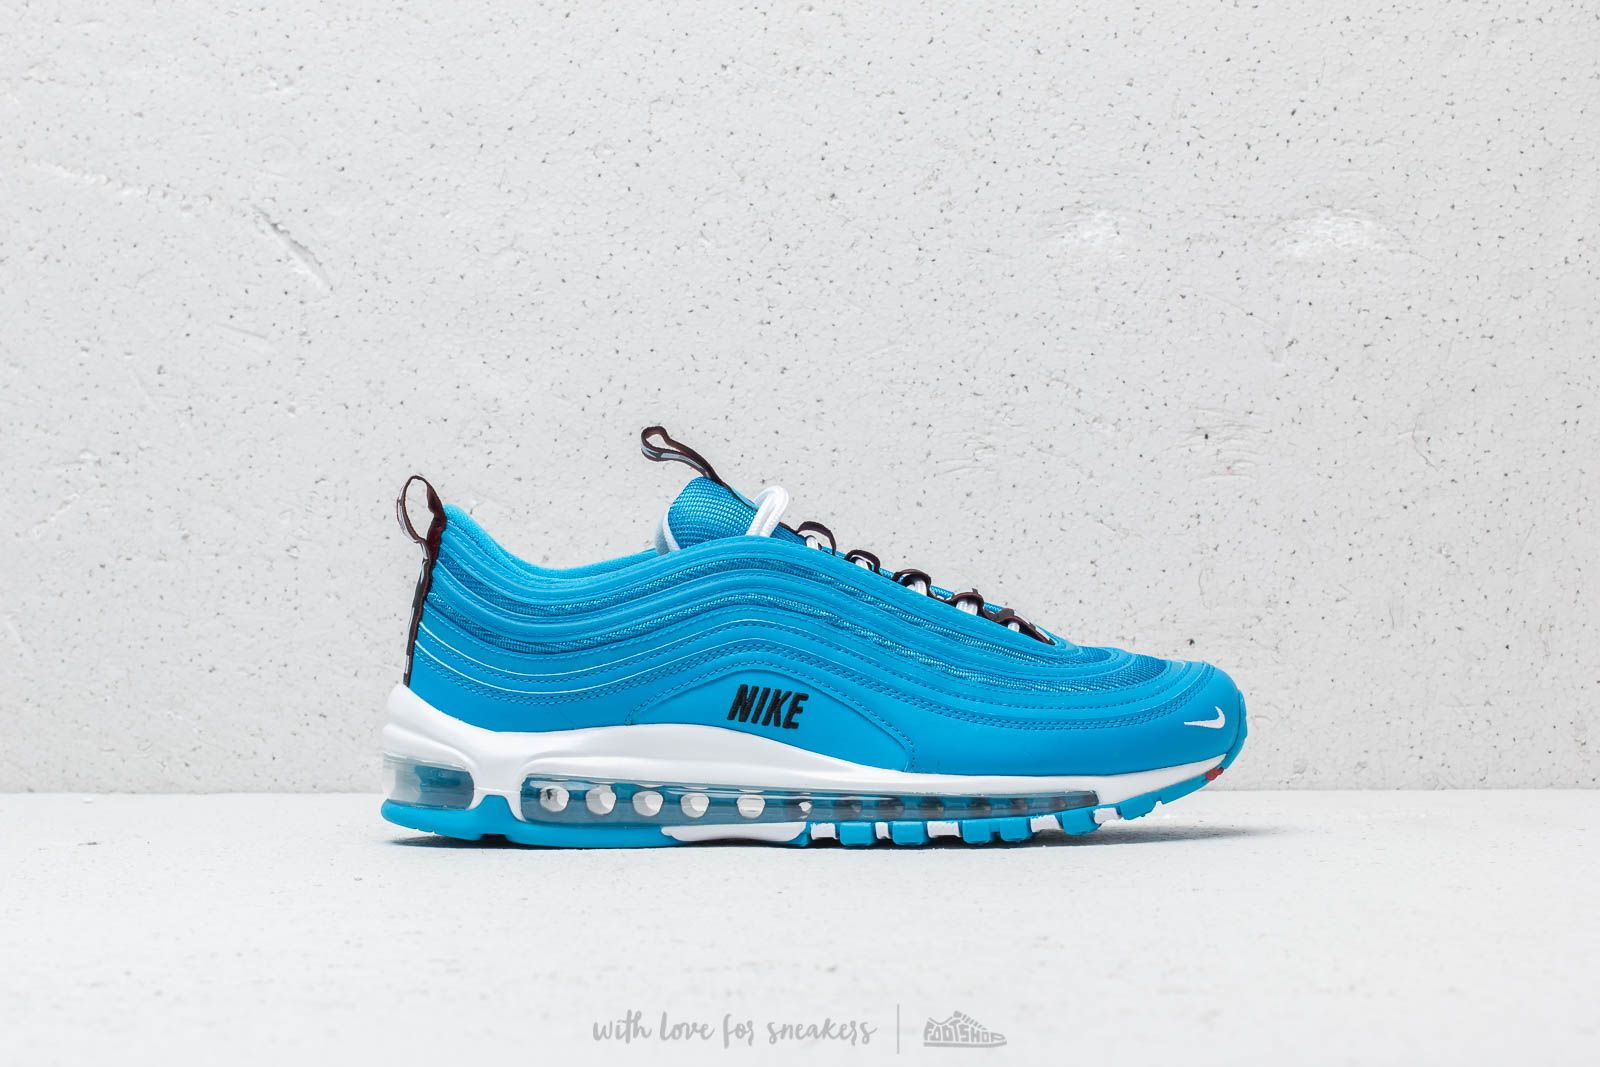 Nike Air Max 97 Premium Blue Hero White Black | Footshop